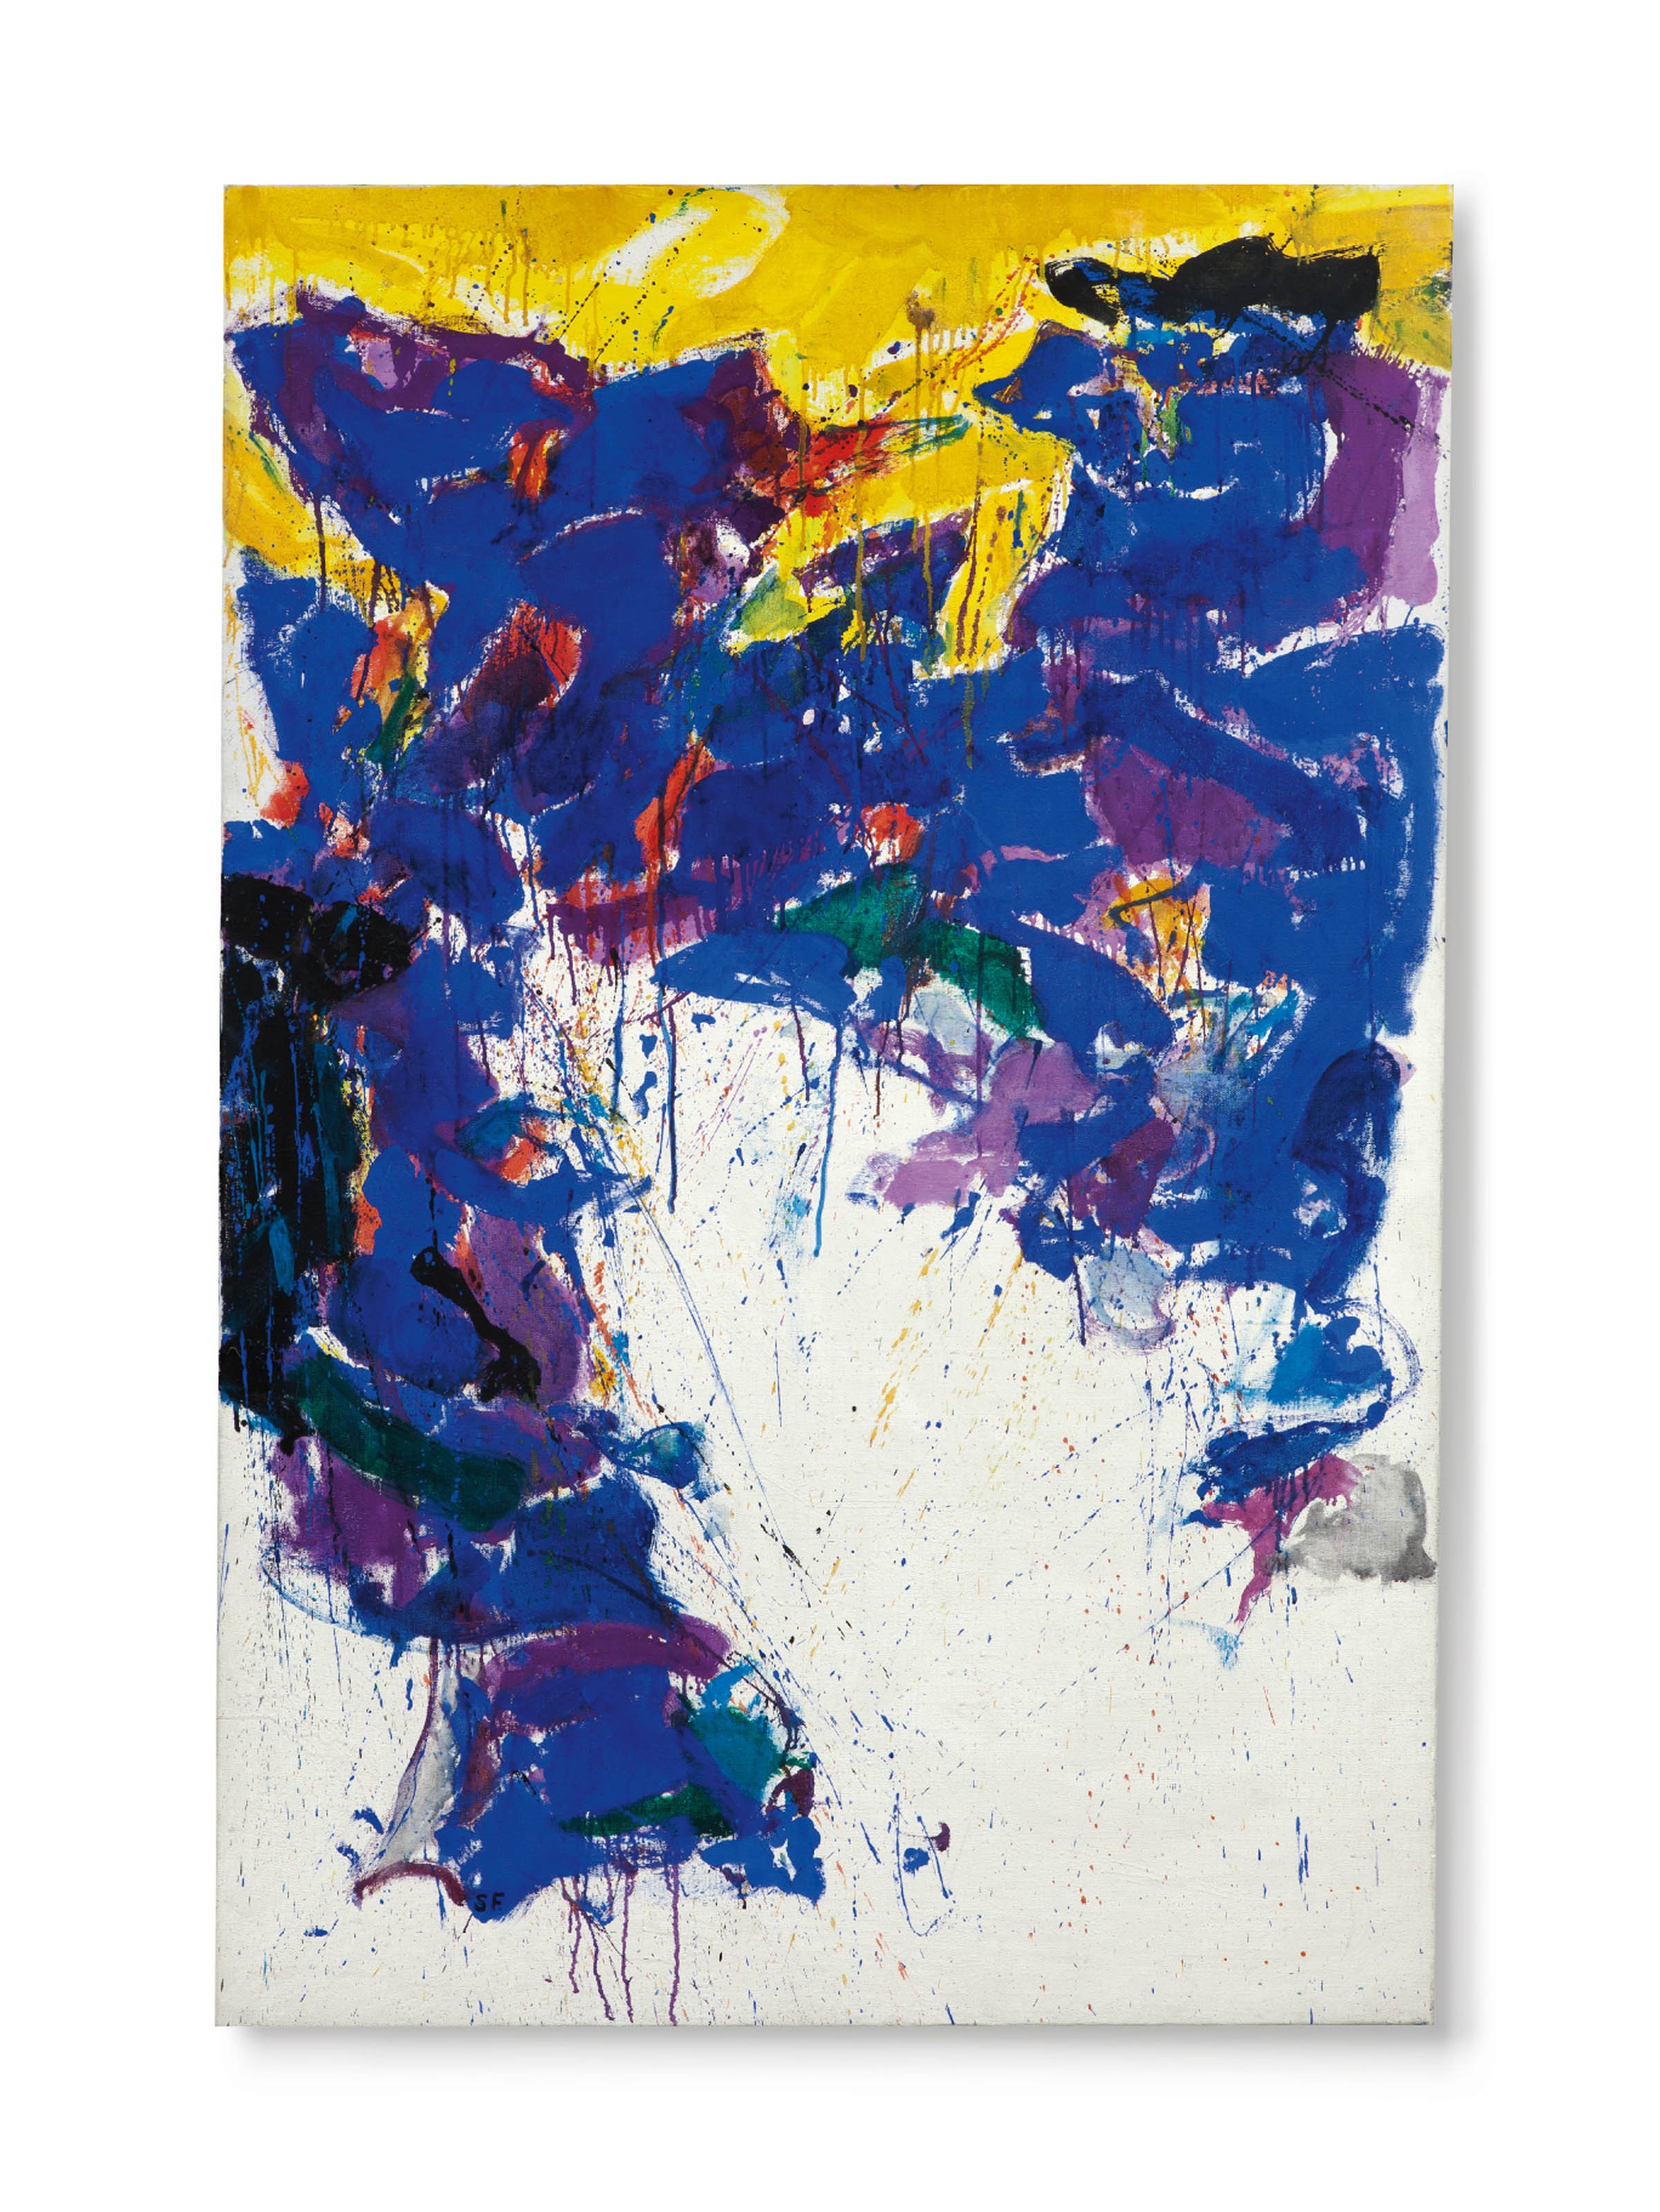 Audio: Sam Francis, Violet, Yellow and White